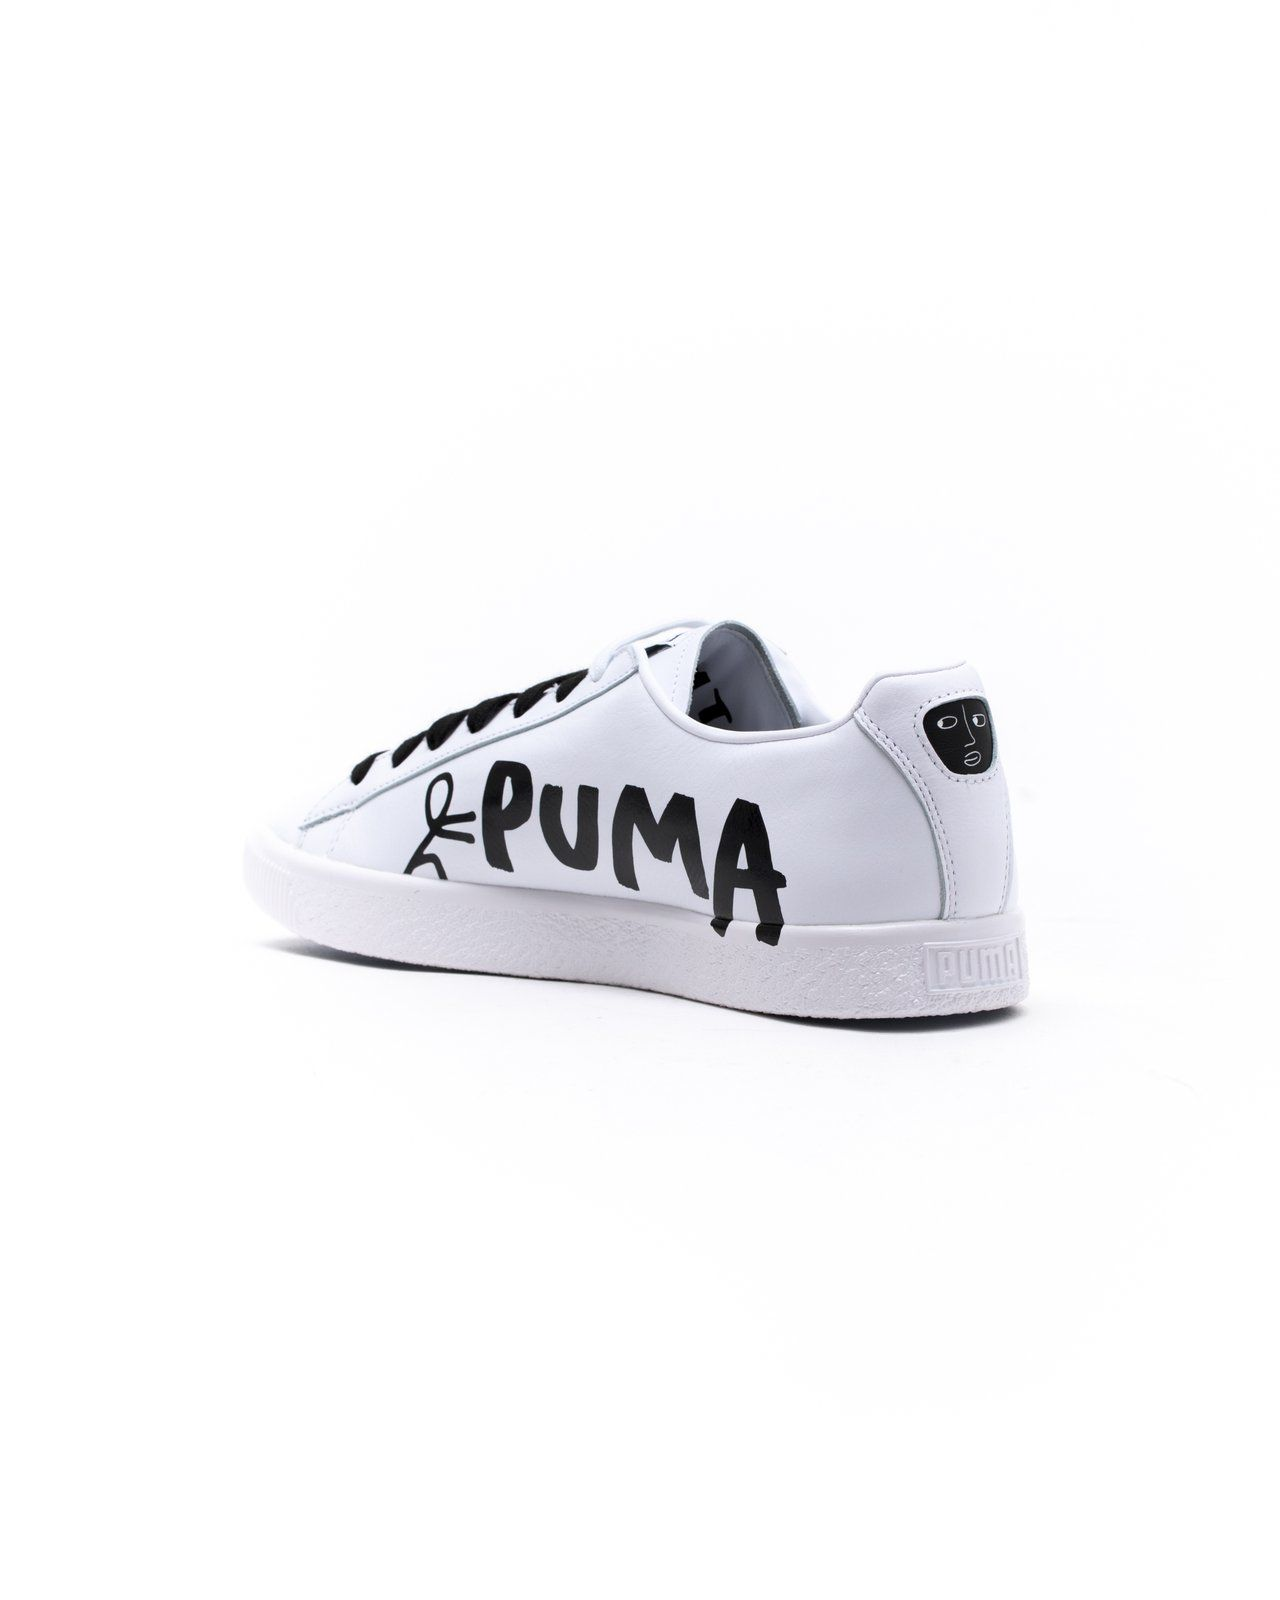 new product f4d5a b0add Puma x Shantell Martin Clyde Sm - Color: Puma White/Puma ...